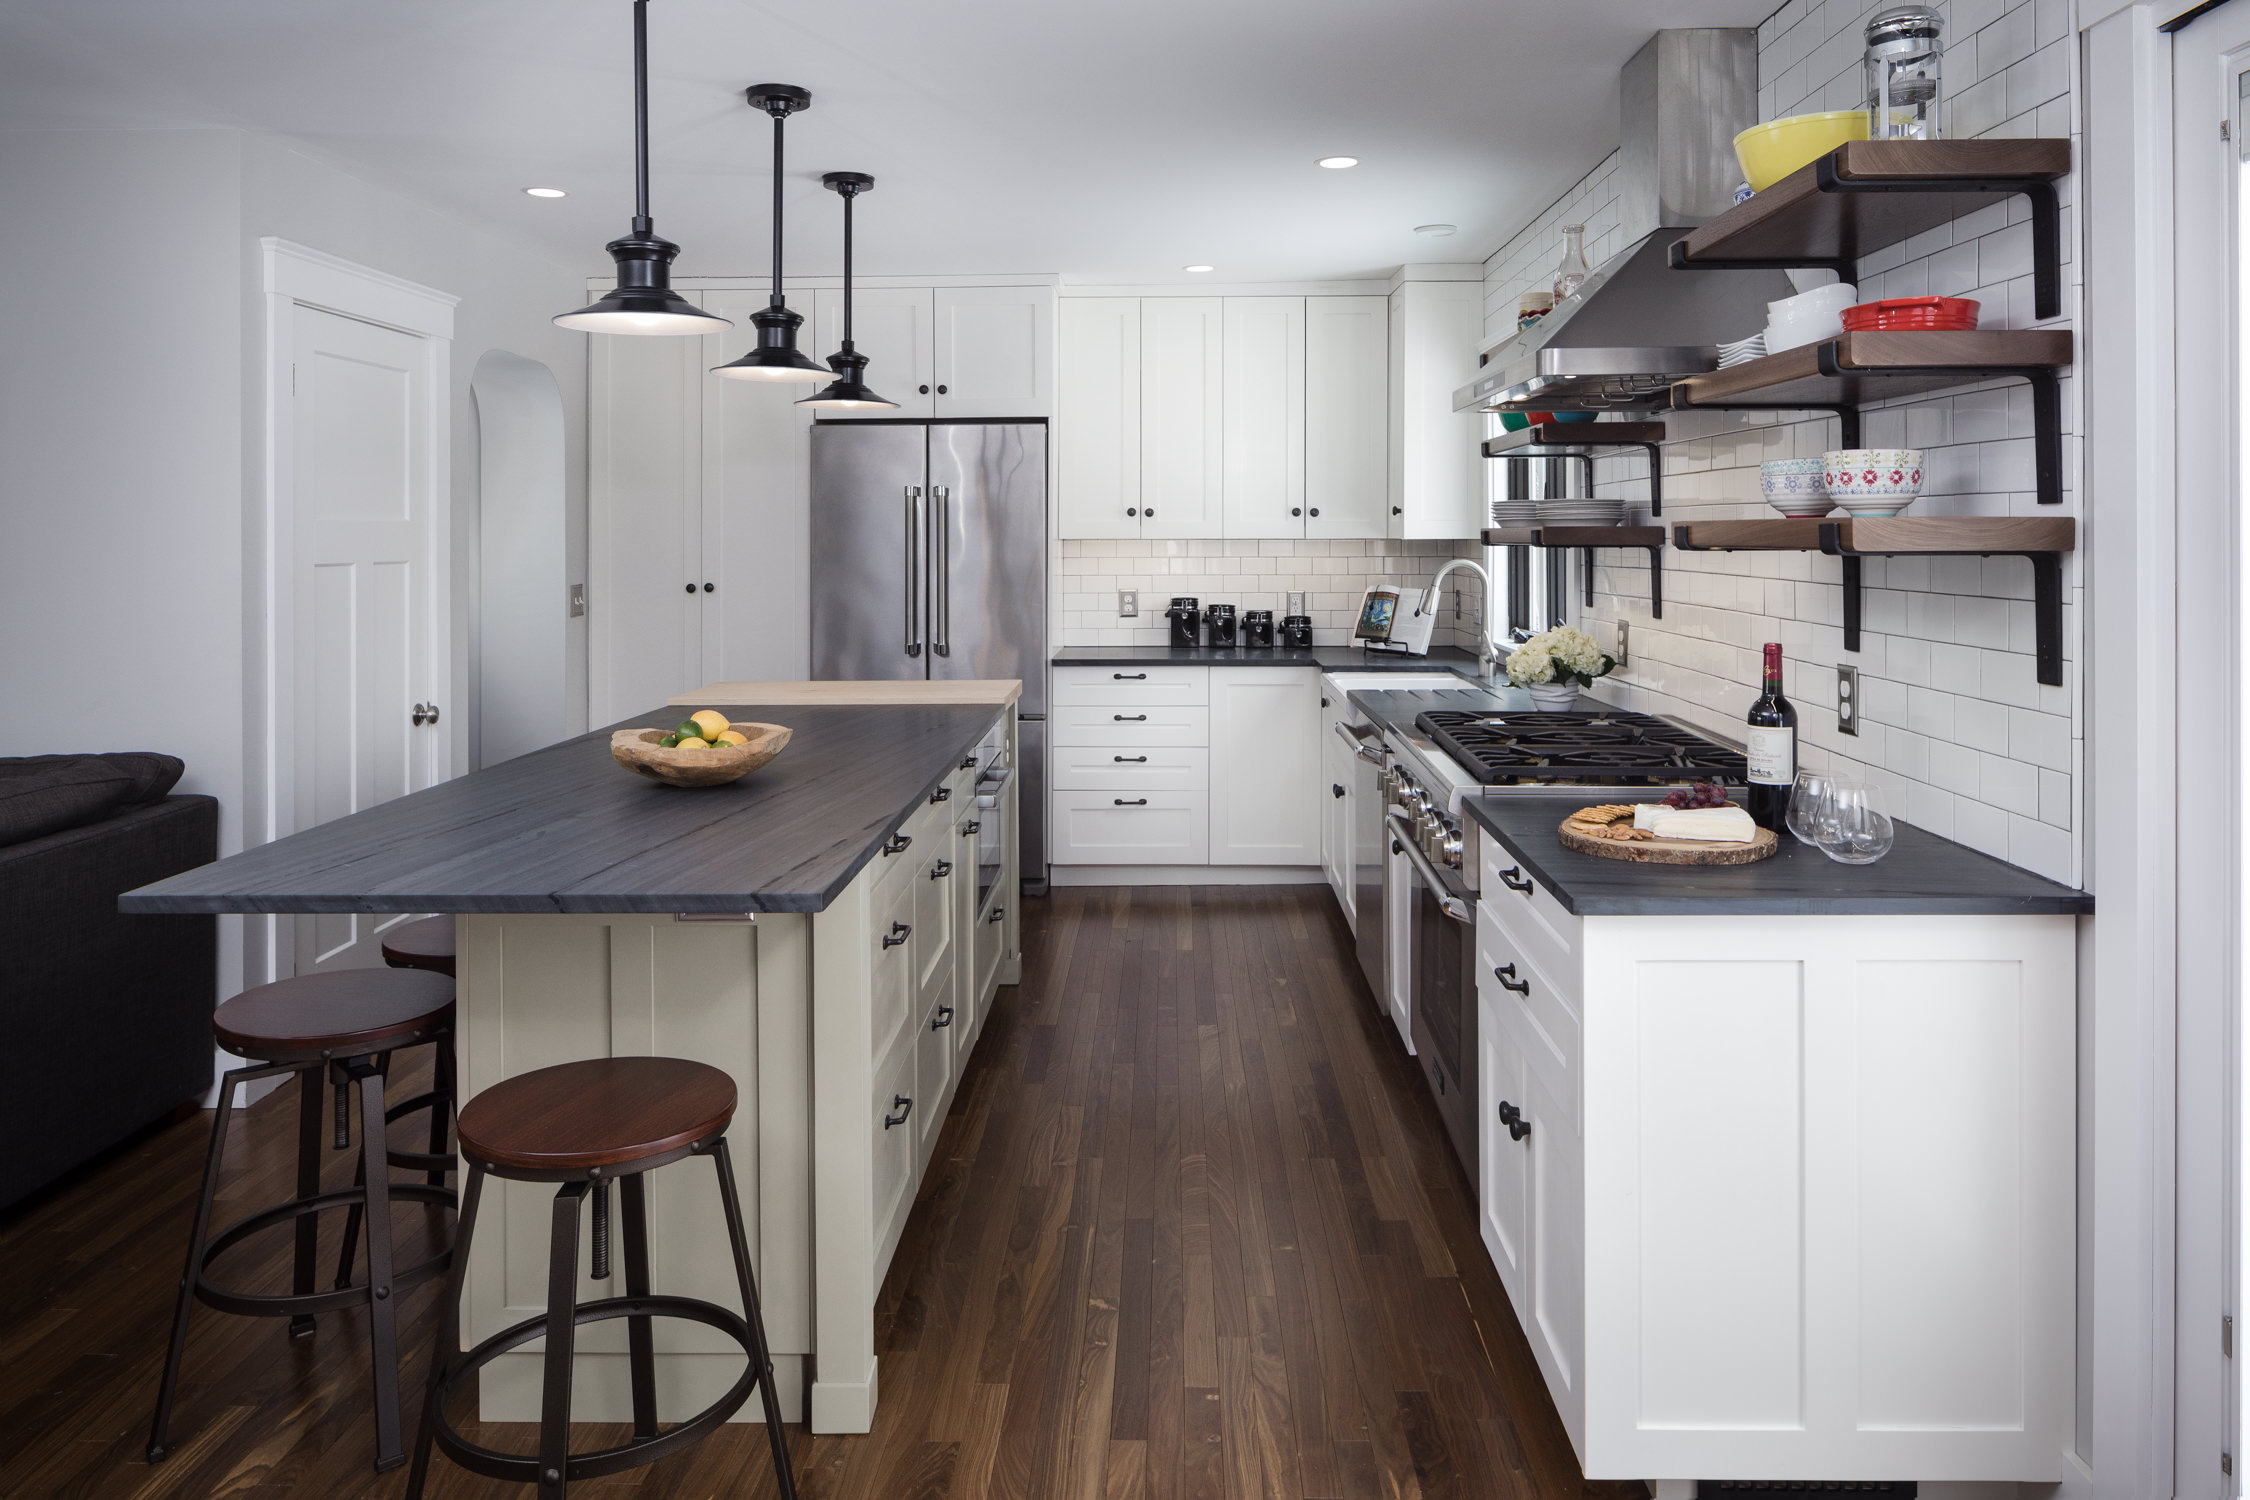 Photo of open plan kitchen by Stina Booth architecture photography of a Vermont kitchen remodel in Burlington by Roots Design Studio